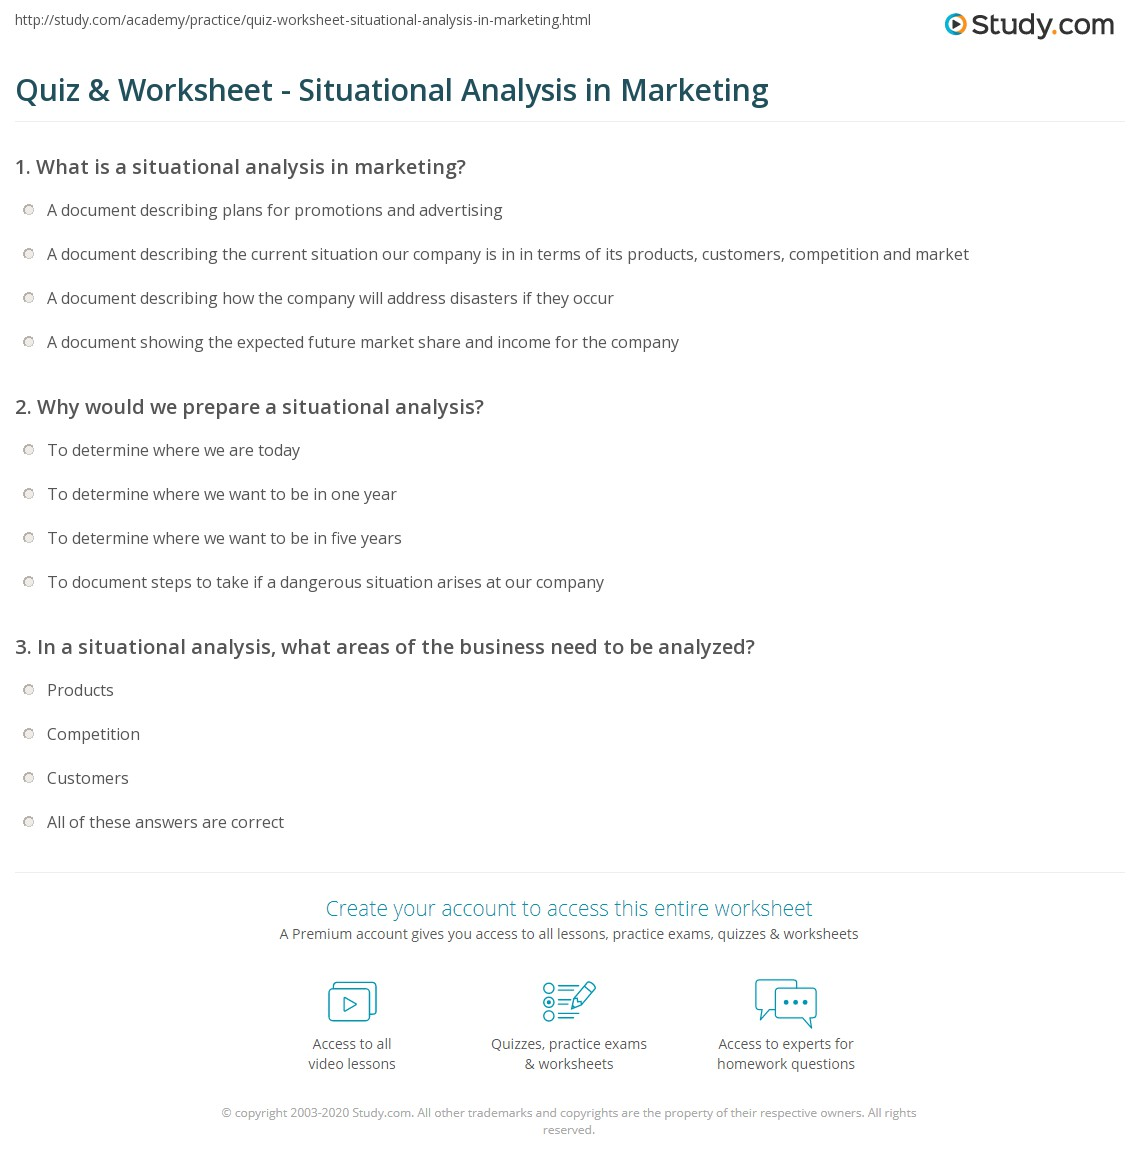 Quiz Worksheet Situational Analysis In Marketing Study